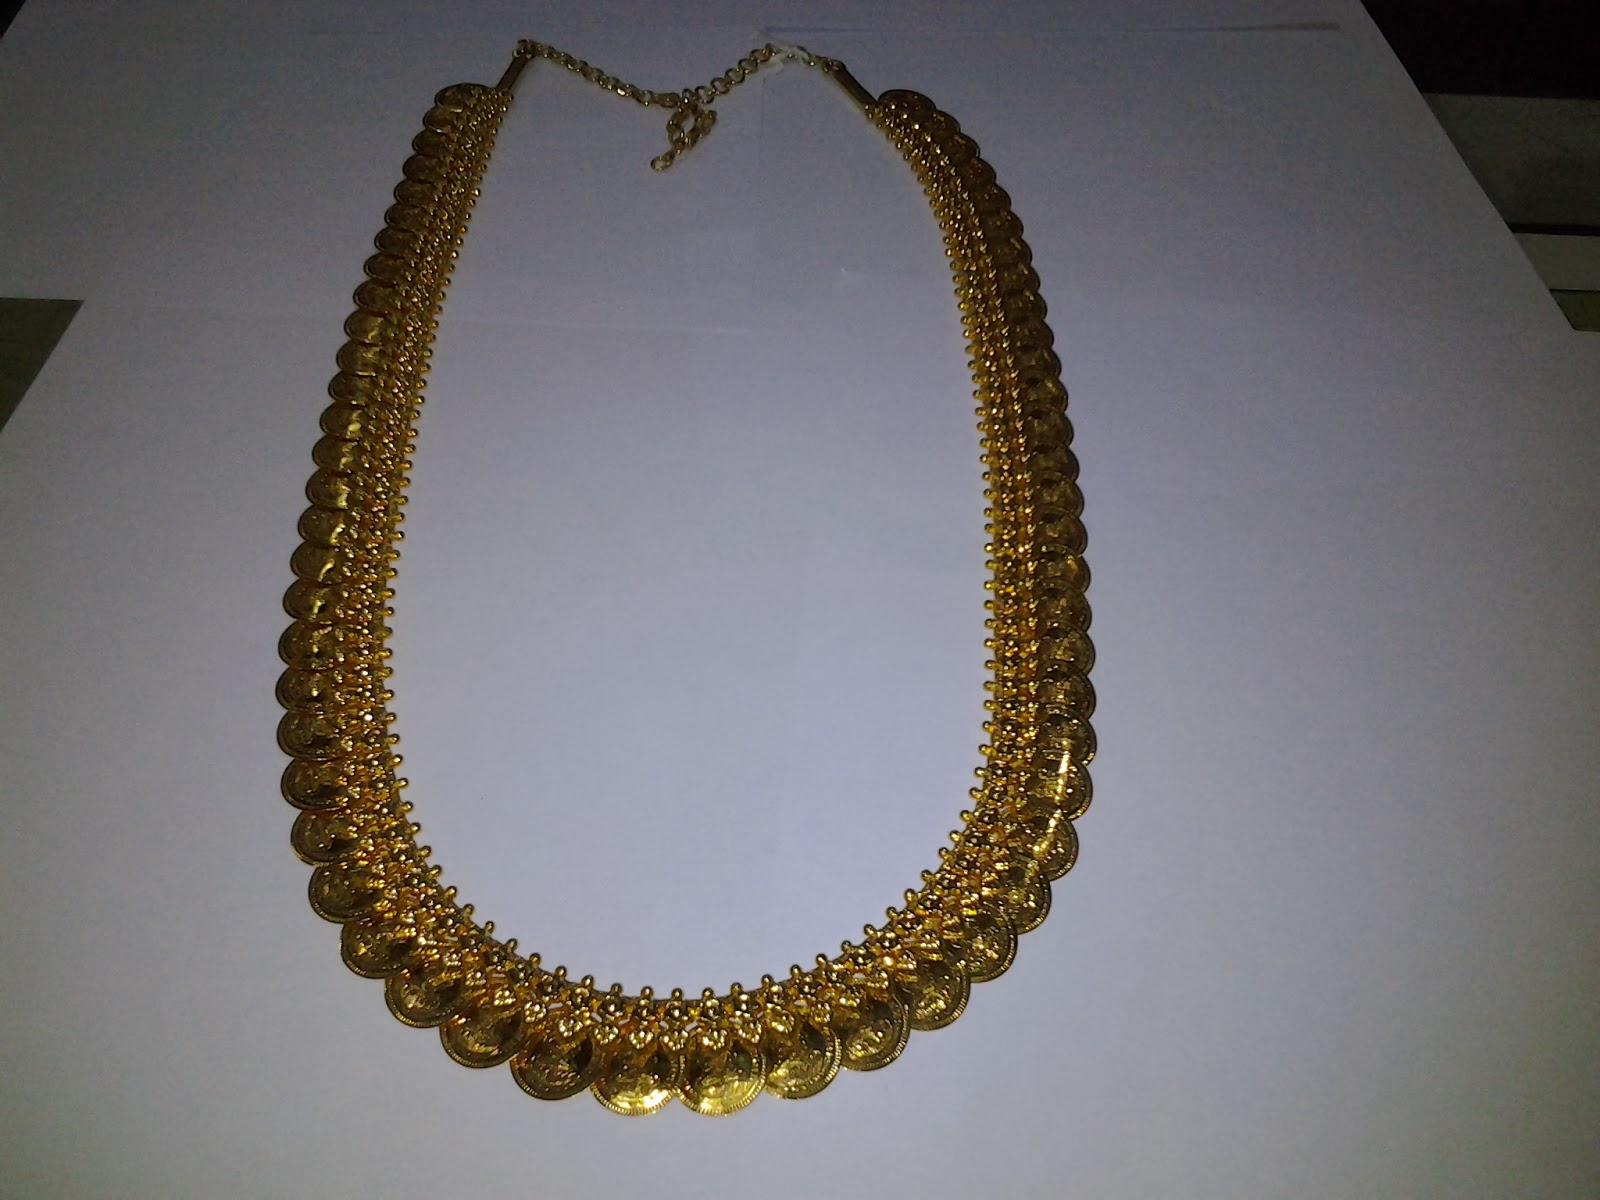 Jewellery related articles: November 2013